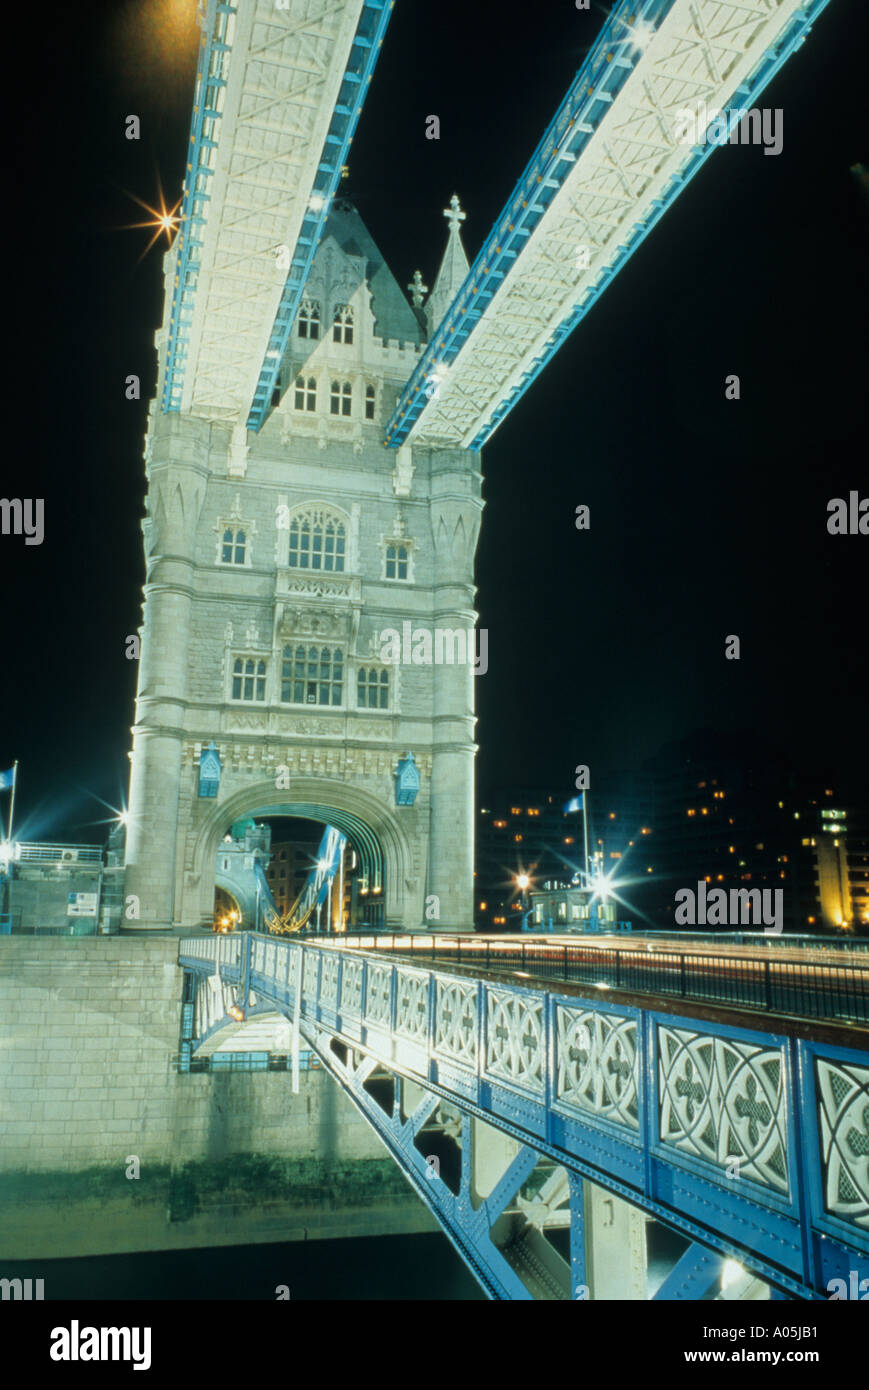 Close up view of the Tower Bridge in London England in the evening - Stock Image